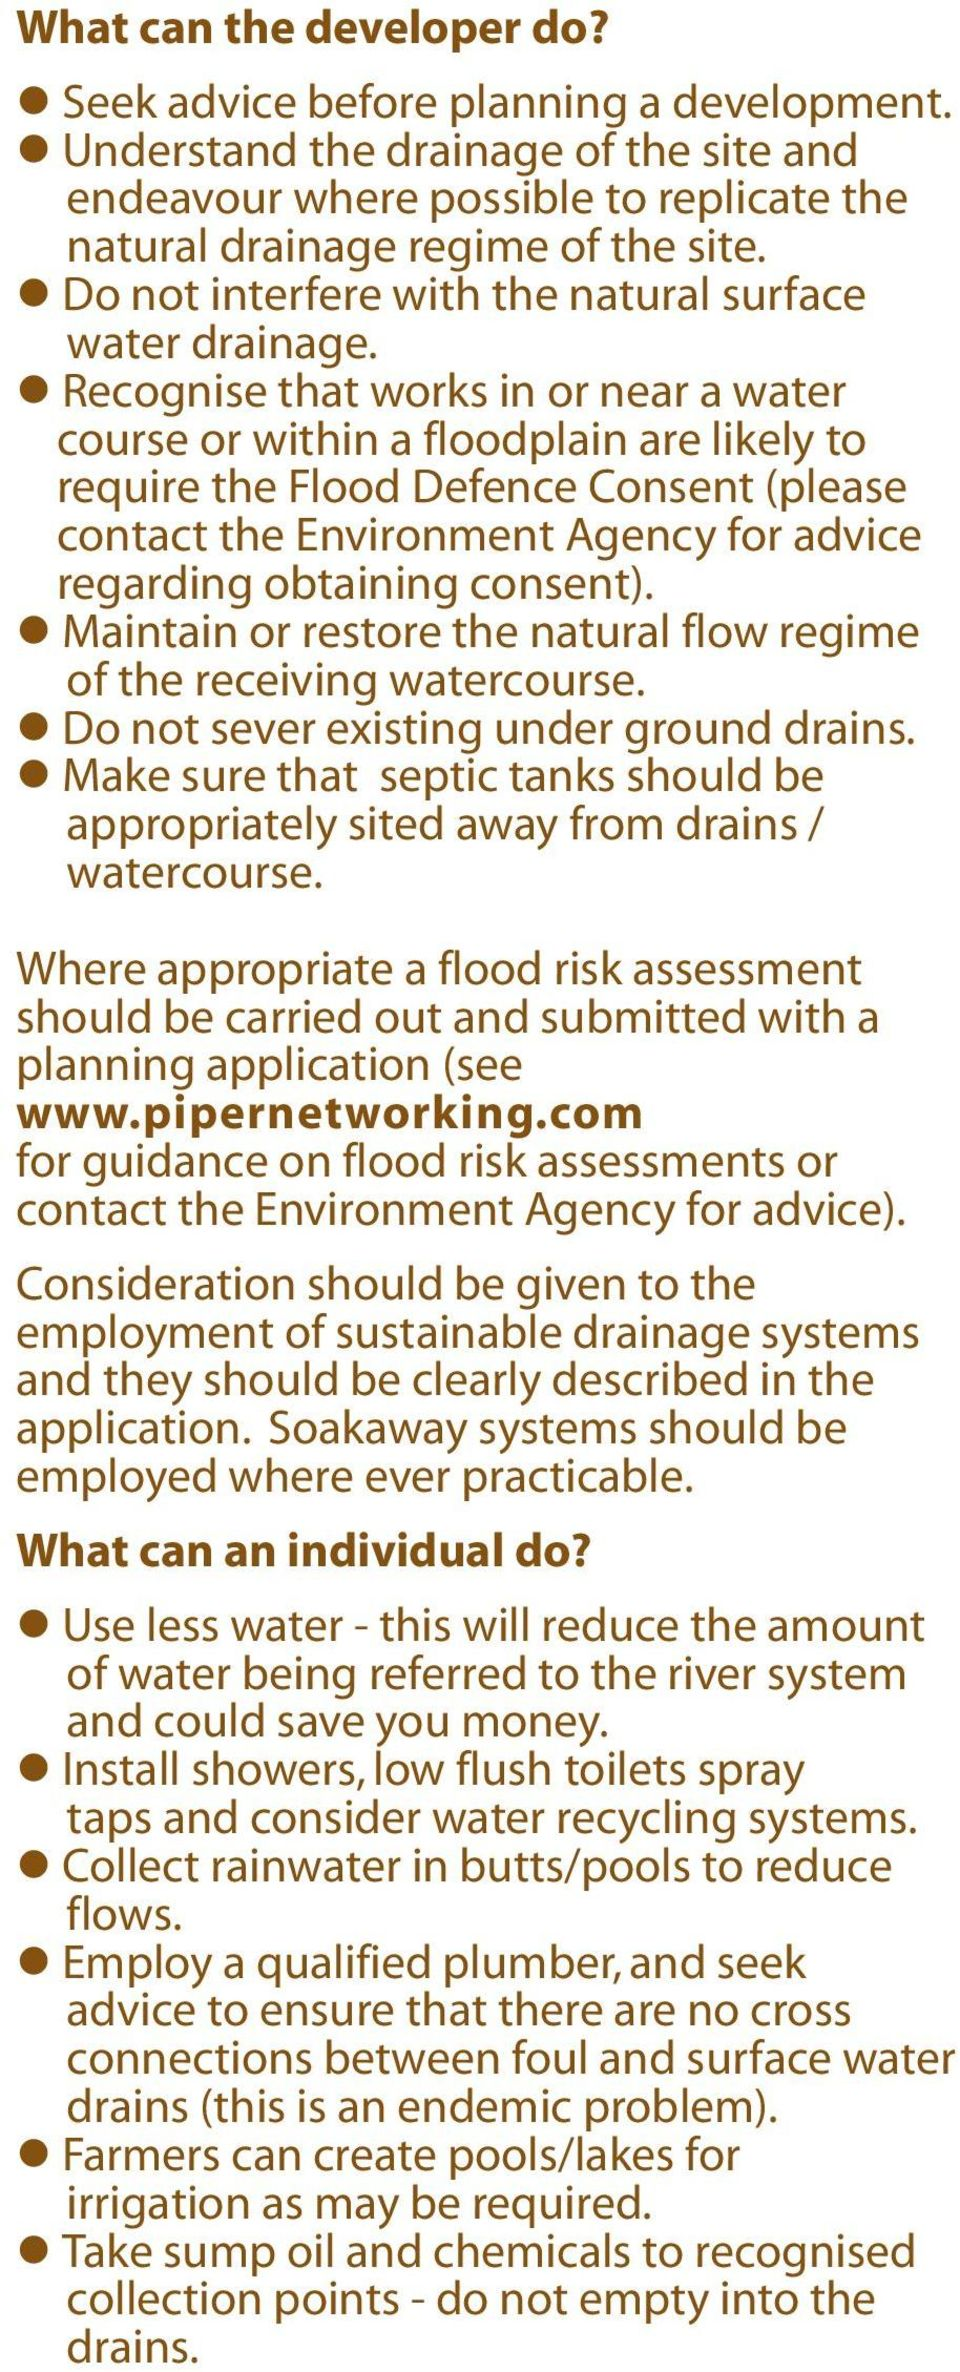 Recognise that works in or near a water course or within a floodplain are likely to require the Flood Defence Consent (please contact the Environment Agency for advice regarding obtaining consent).